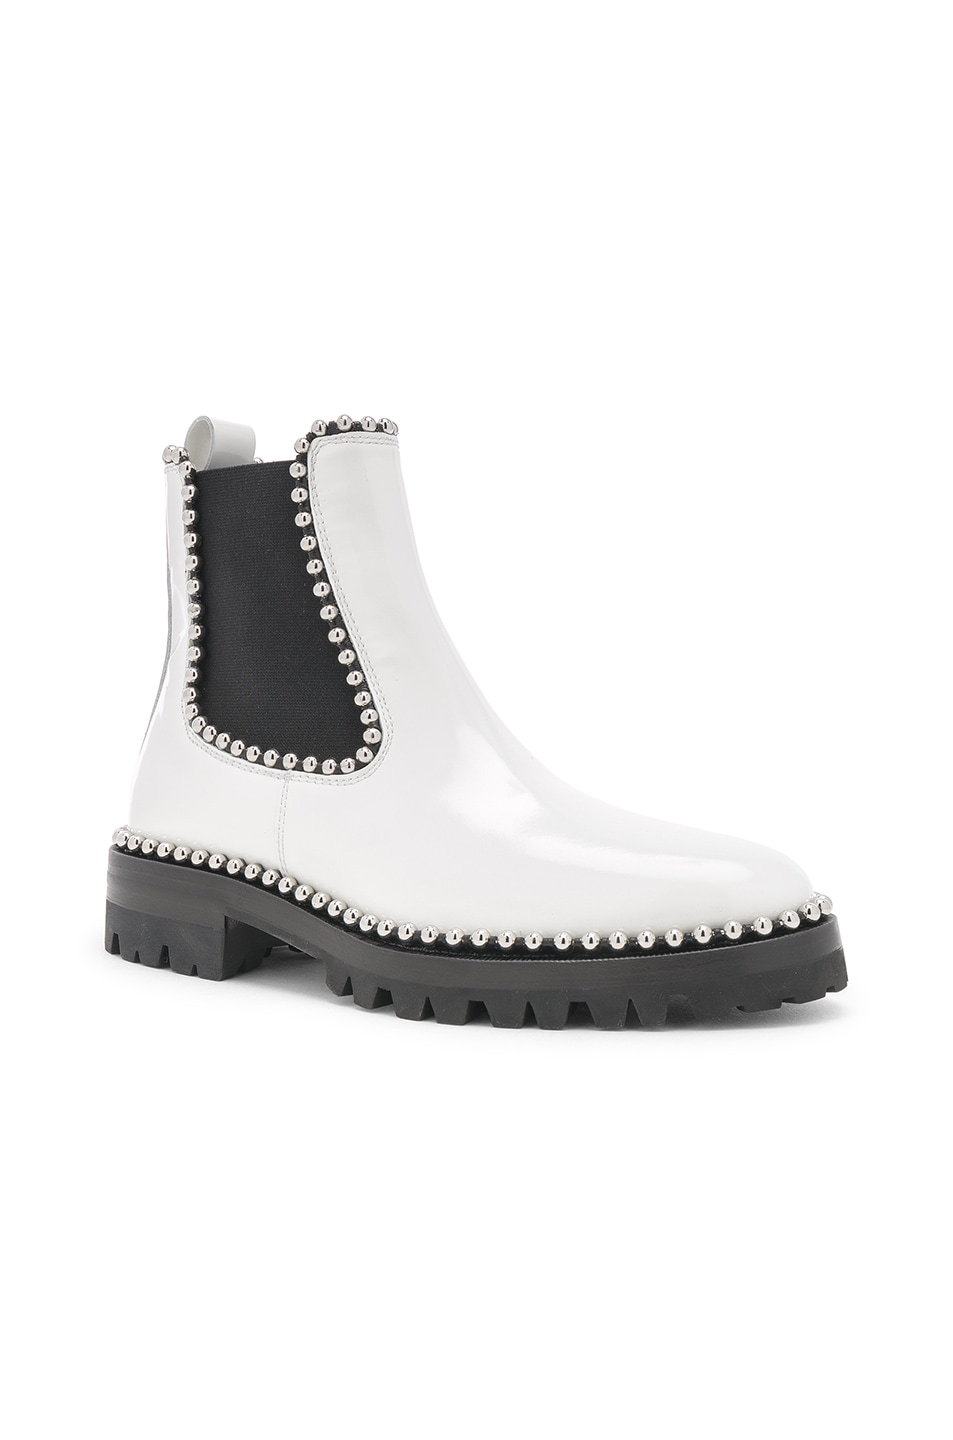 Image 2 of Alexander Wang Spencer Spazzalato Boot in White